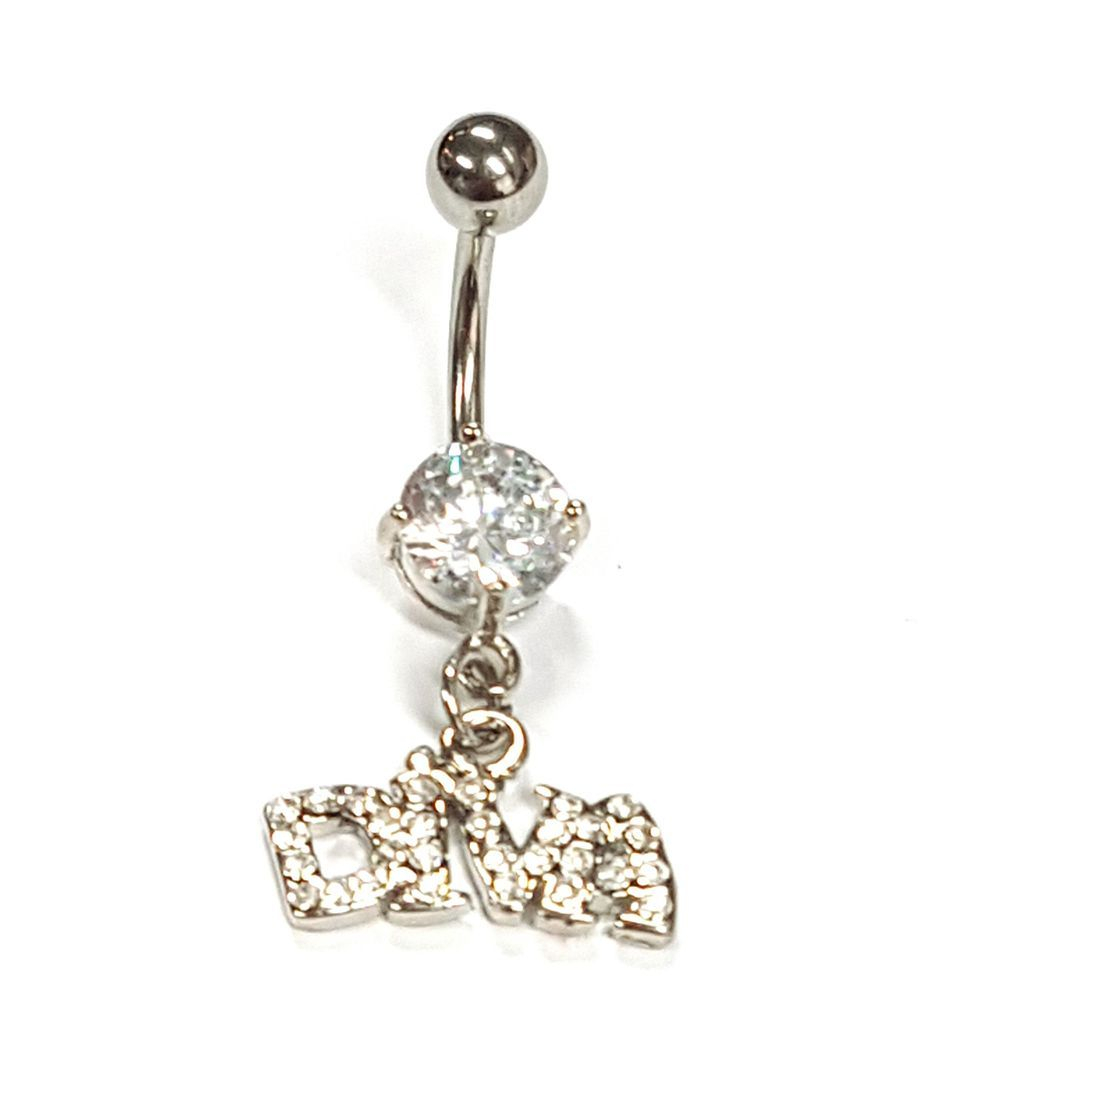 1.6mm x 10mm Clear Crystal Diva Titanium Navel Bar  available at Kazbah online and our Leicester City Centre Shop